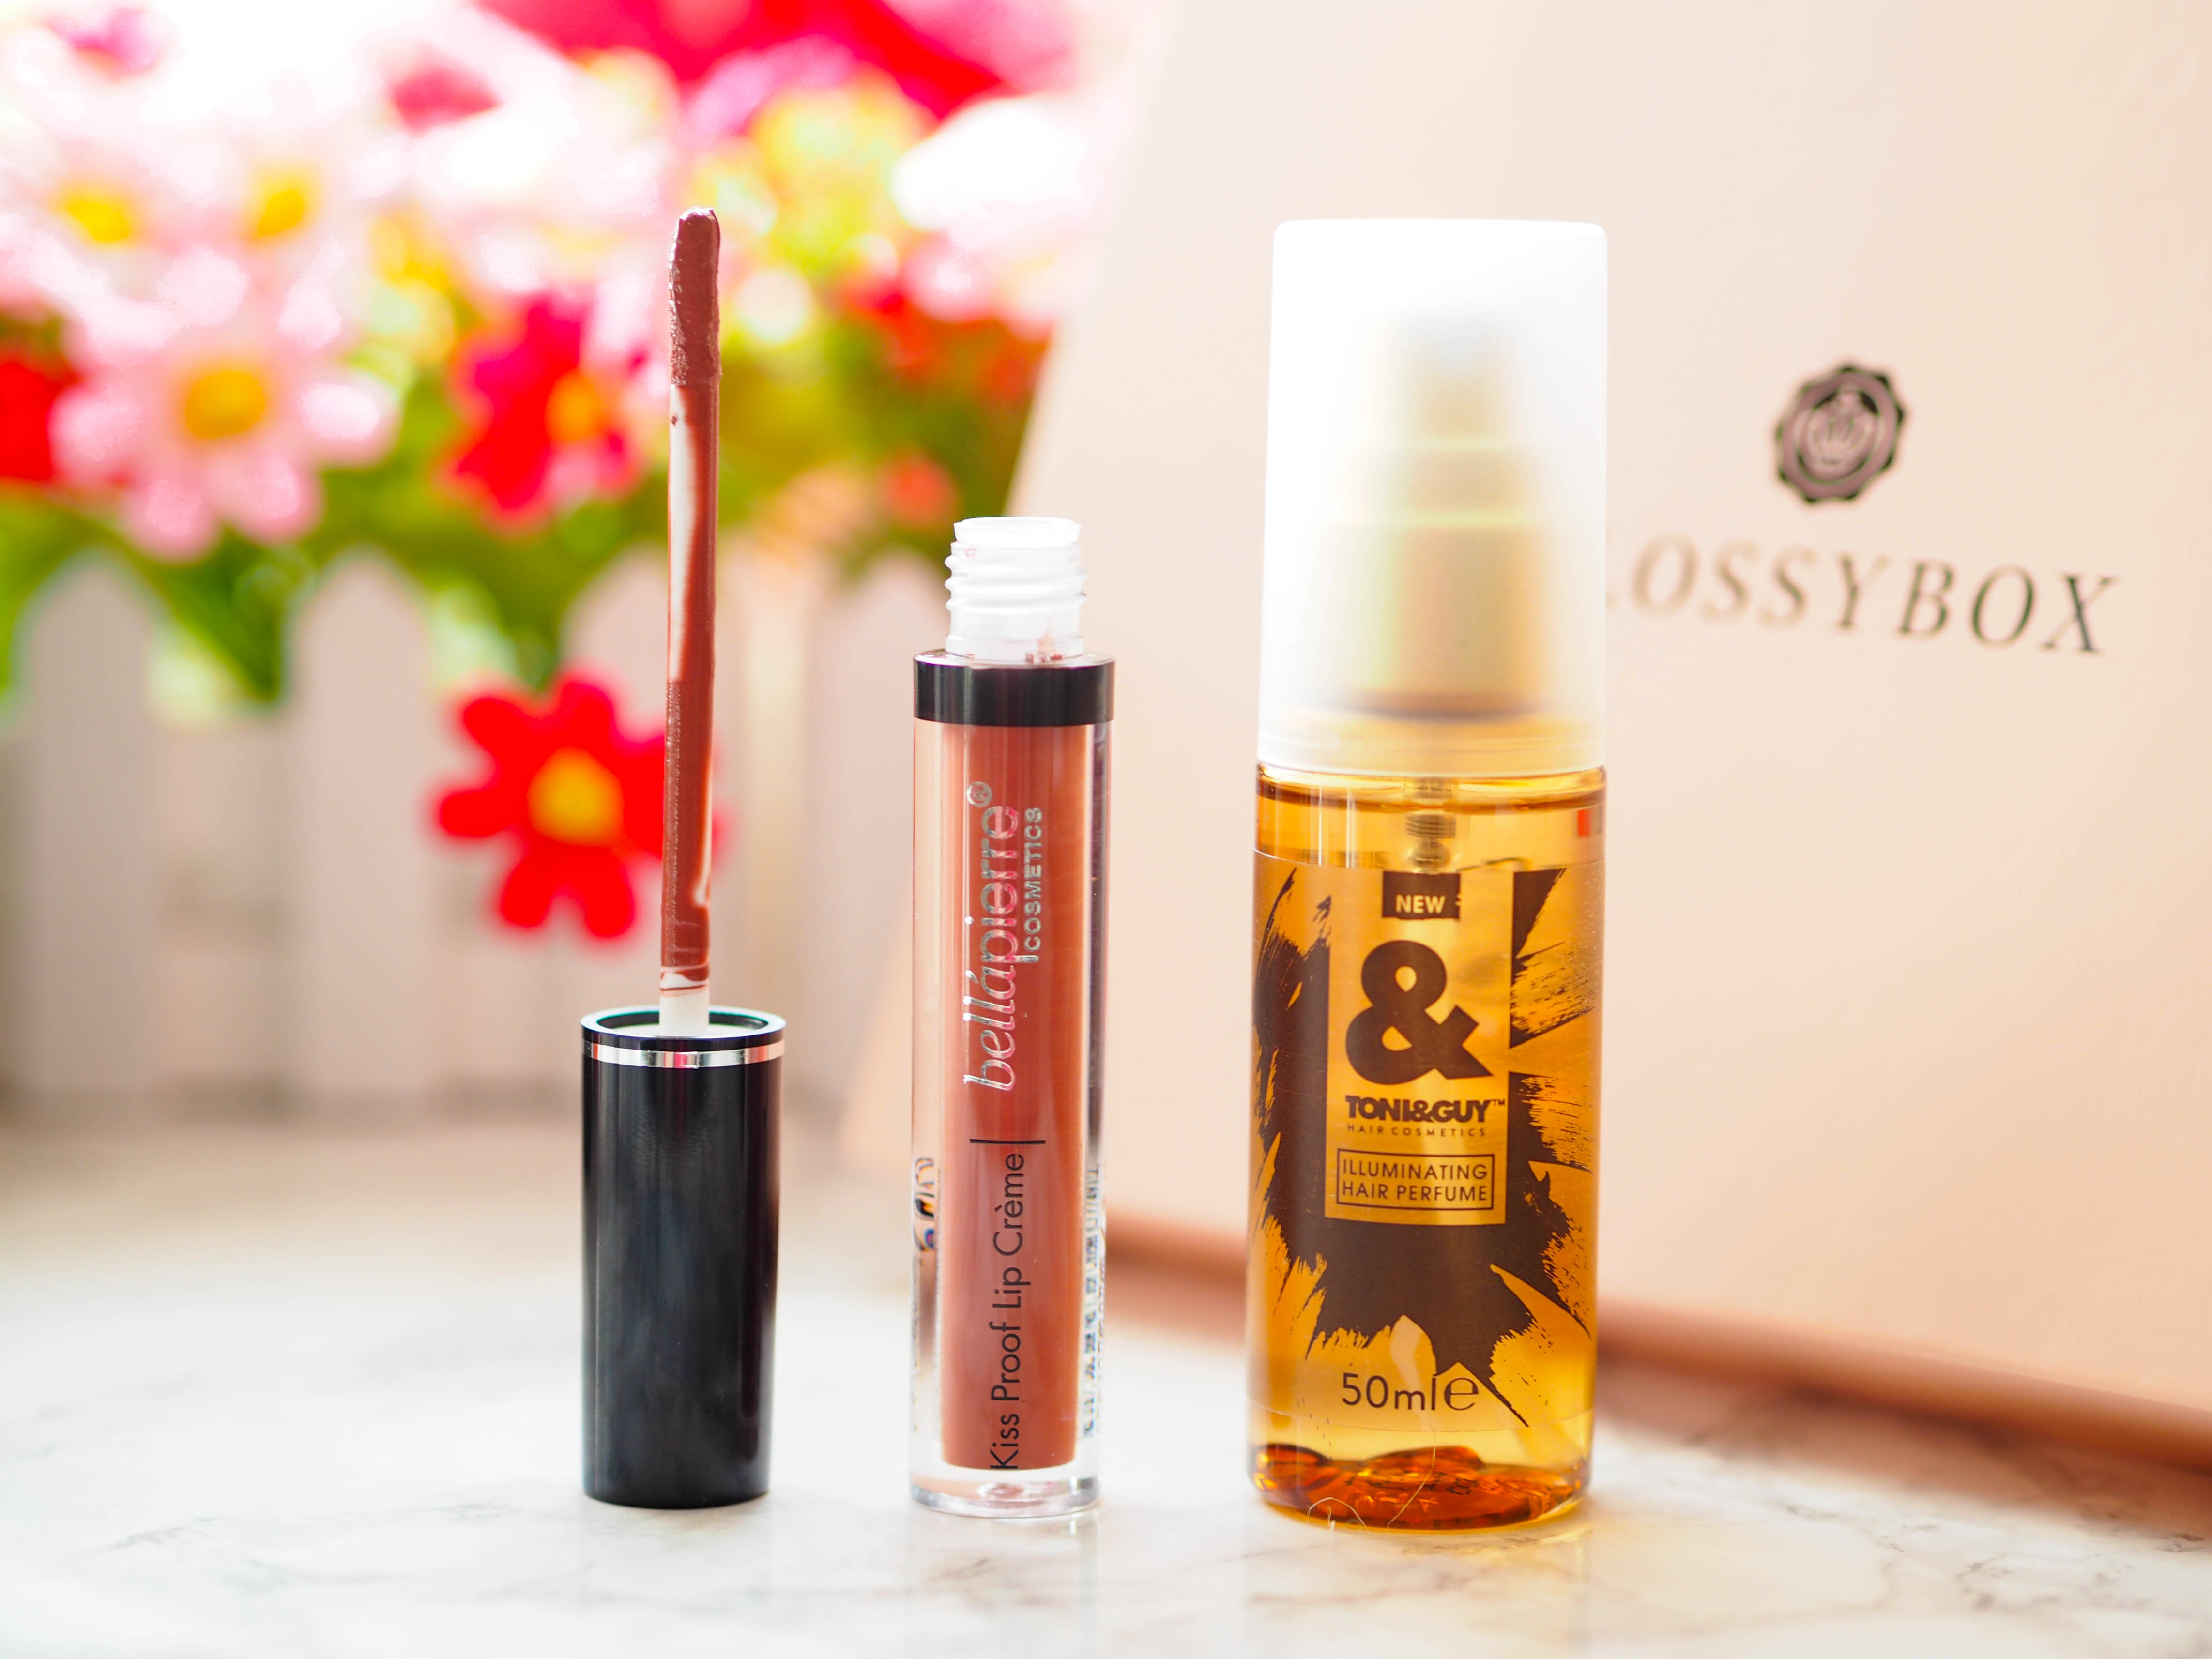 Glossybox March 2019 Contents